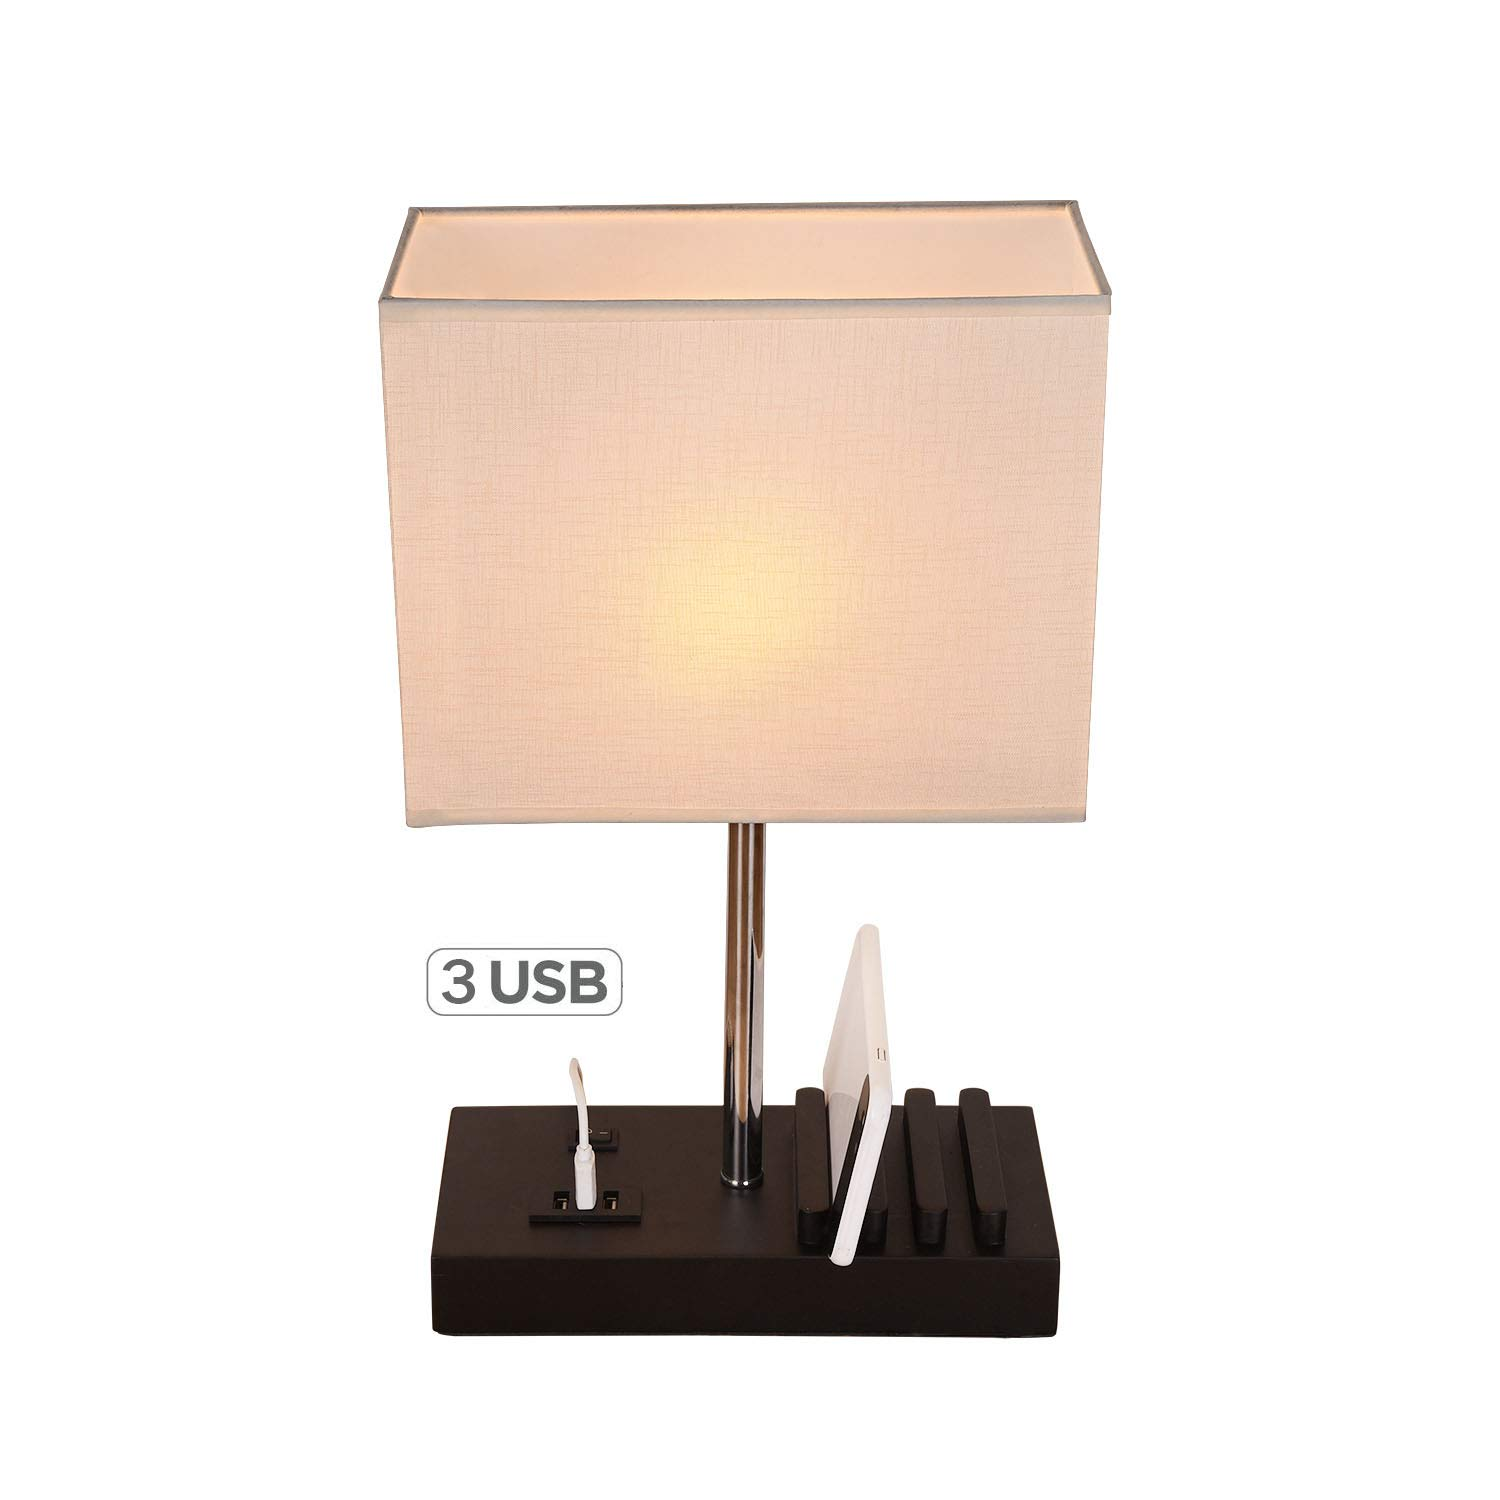 USB Table Lamp,Hhome Plus Multi-Functional Desk Lamp with 3 USB Charging Ports and Phone Charge Dock, Black Wood Charging Station and Organizer, Perfect Light for Bedroom,Guest Room,Living Room,Office